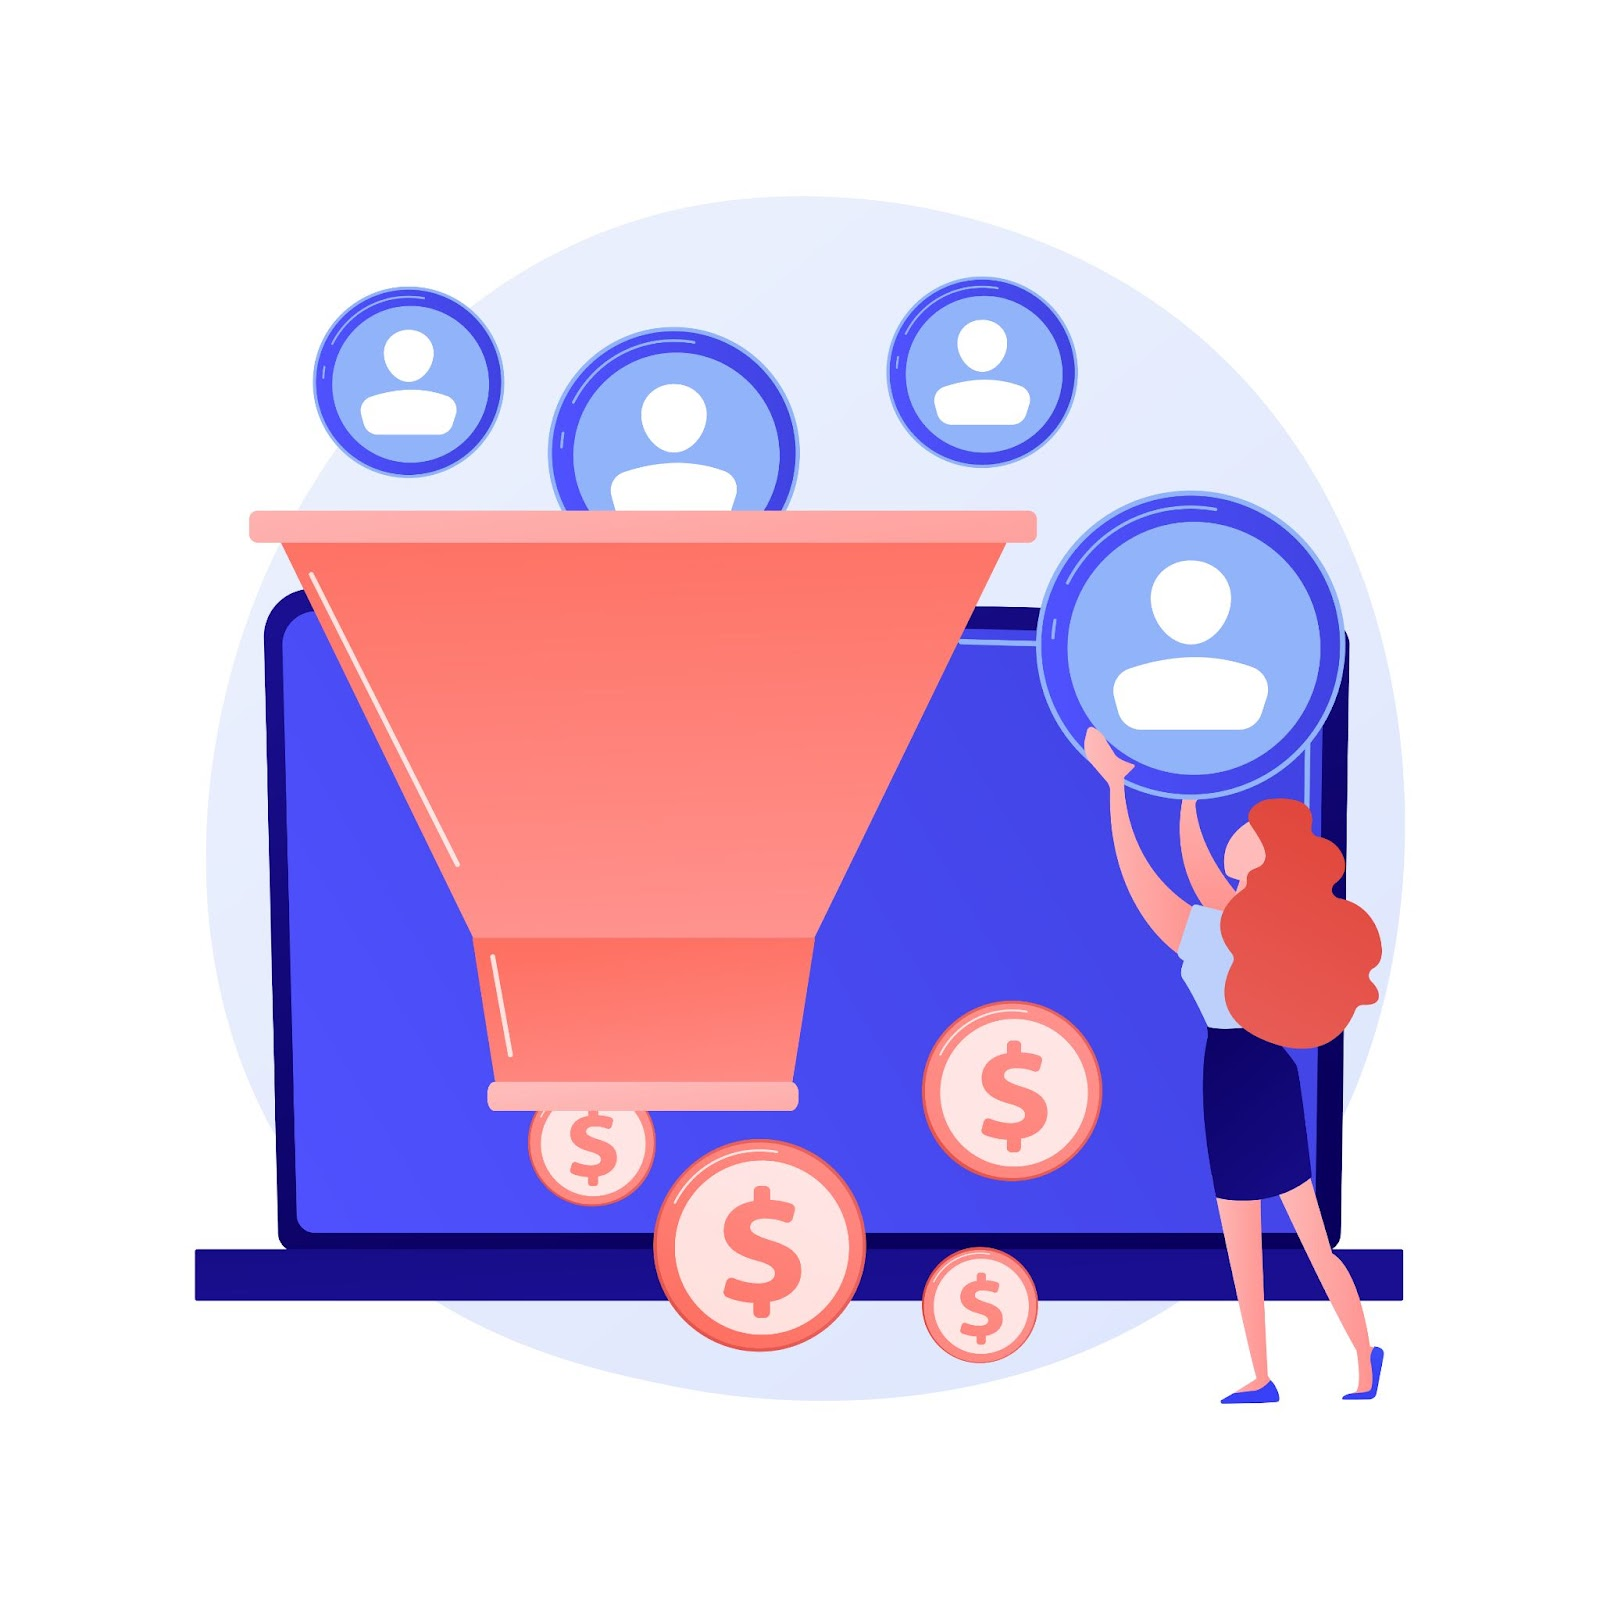 Your messaging changes depending on the funnel position